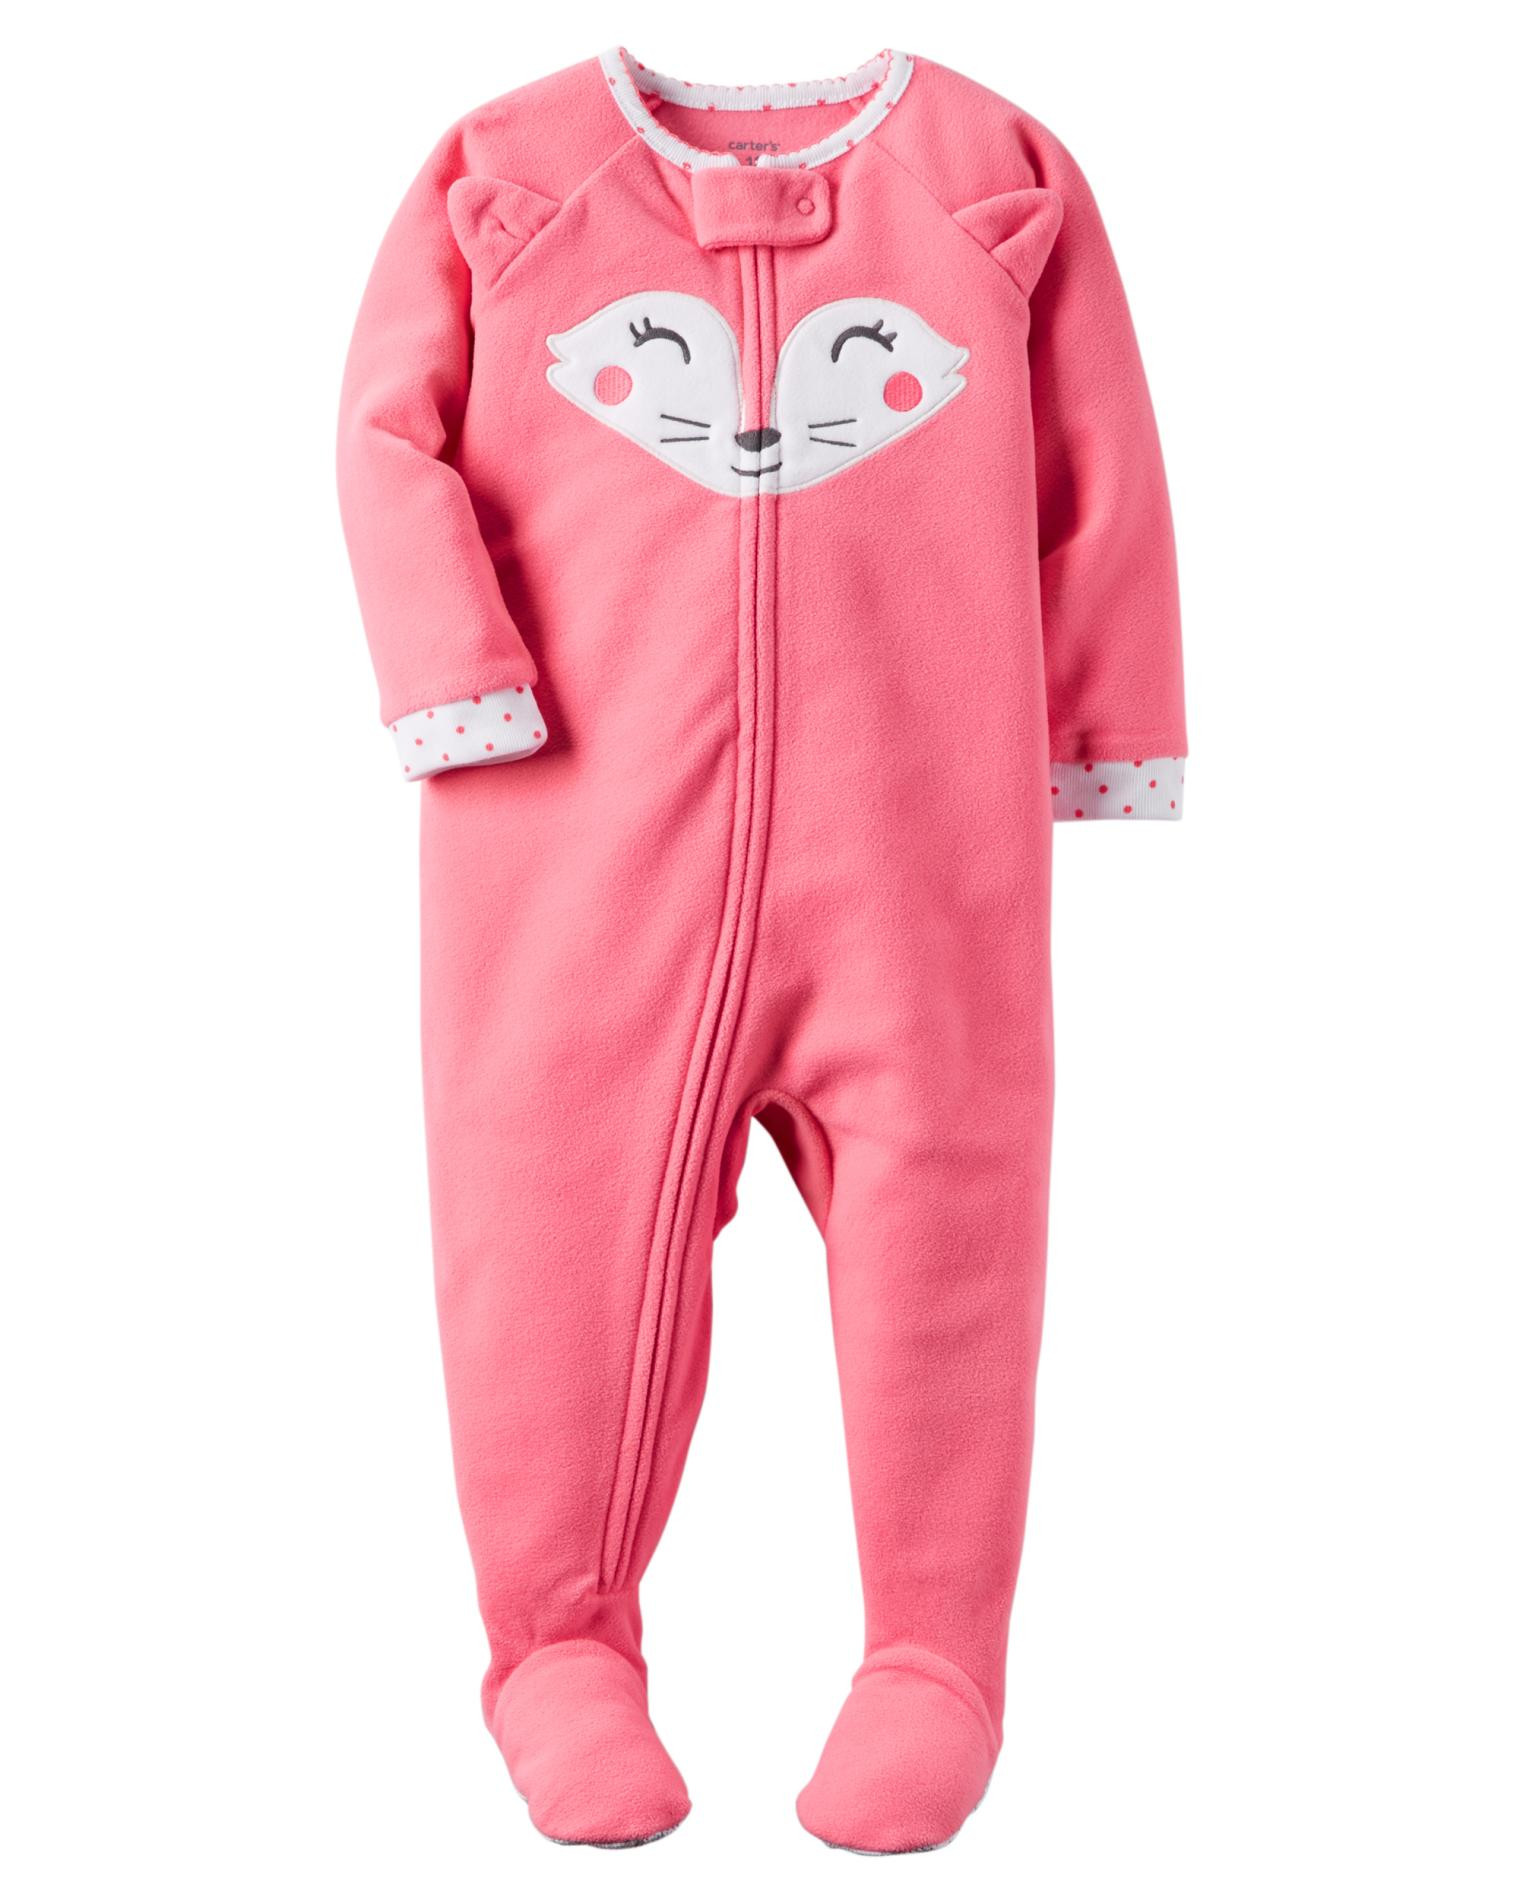 Baby Footed Pajamas Inspirational Carter S Infant & toddler Girls Fleece Footed Pajamas Fox Of Amazing 42 Pictures Baby Footed Pajamas